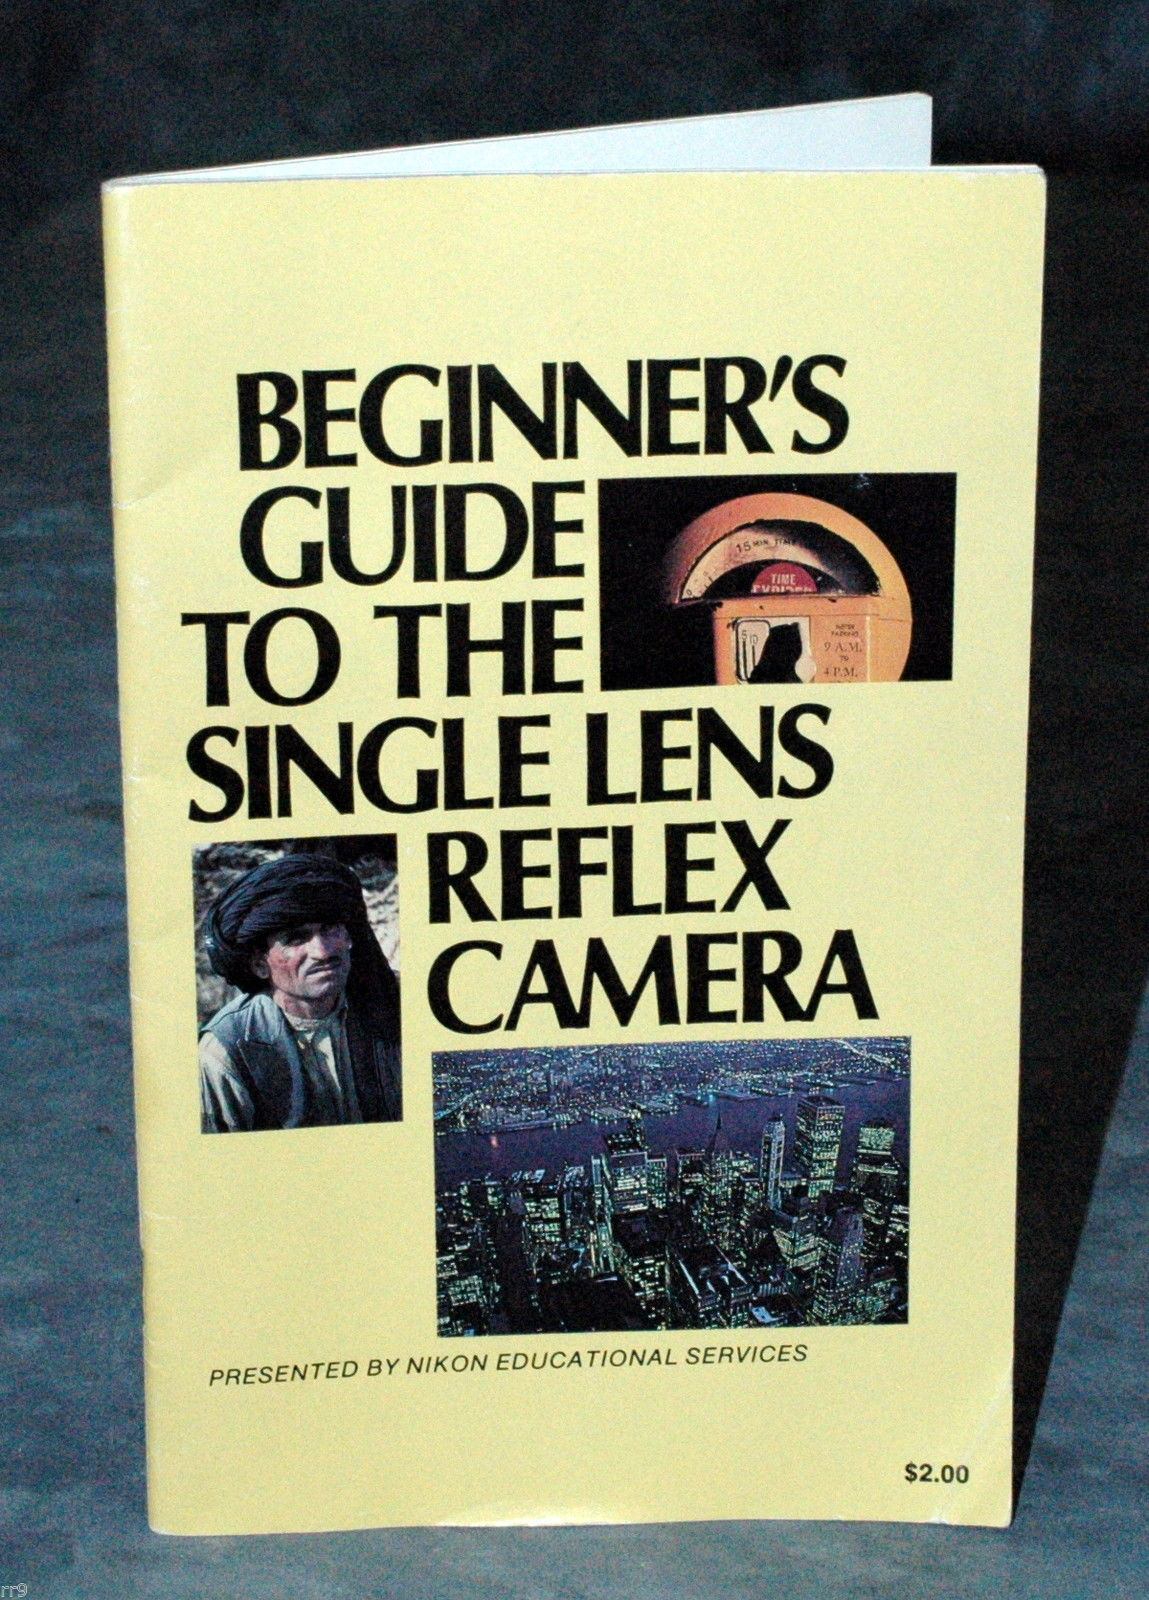 Primary image for Beginner's Guide To The Single Lens Reflex Camera Booklet